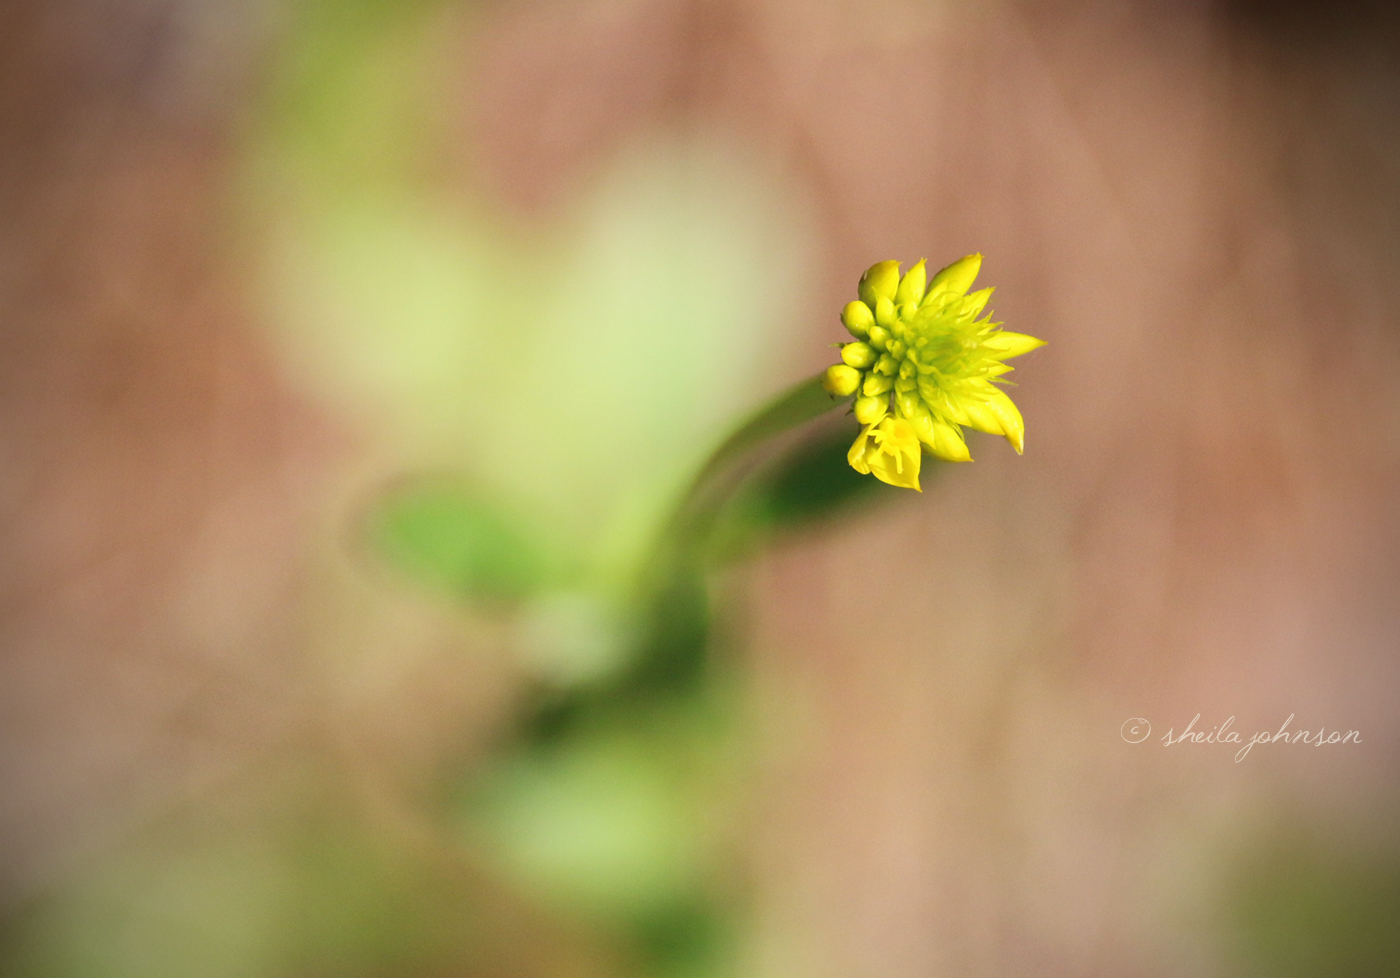 Our Focus Was On The Yellow Wildflower. We Thought It Lovely That We Captured Heart-Shaped Bokeh.